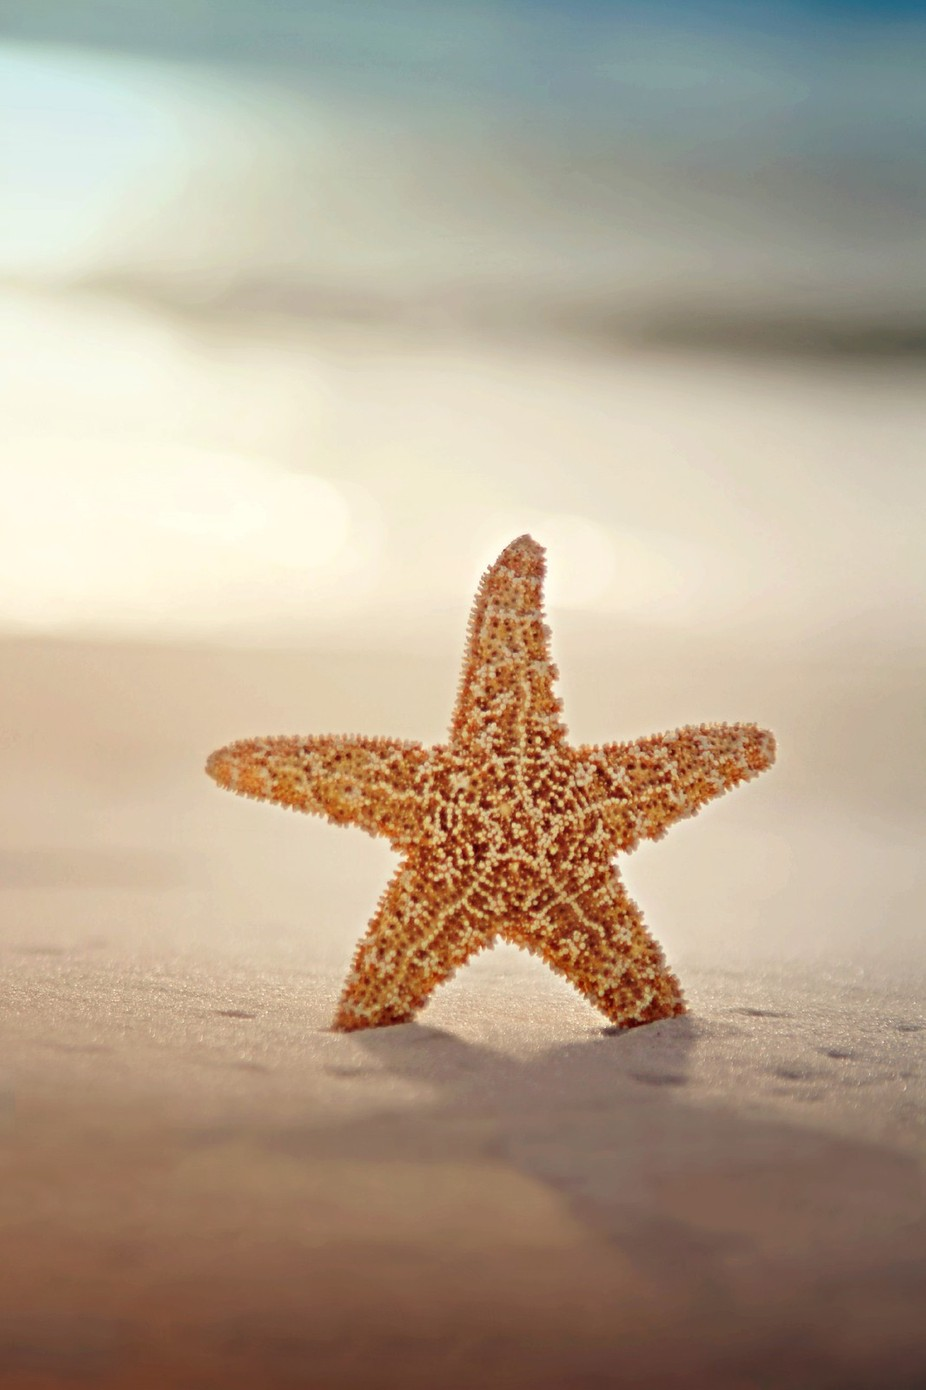 Not all stars belong to the sky by KatieMcKinneyPhotography - Subjects On The Ground Photo Contest